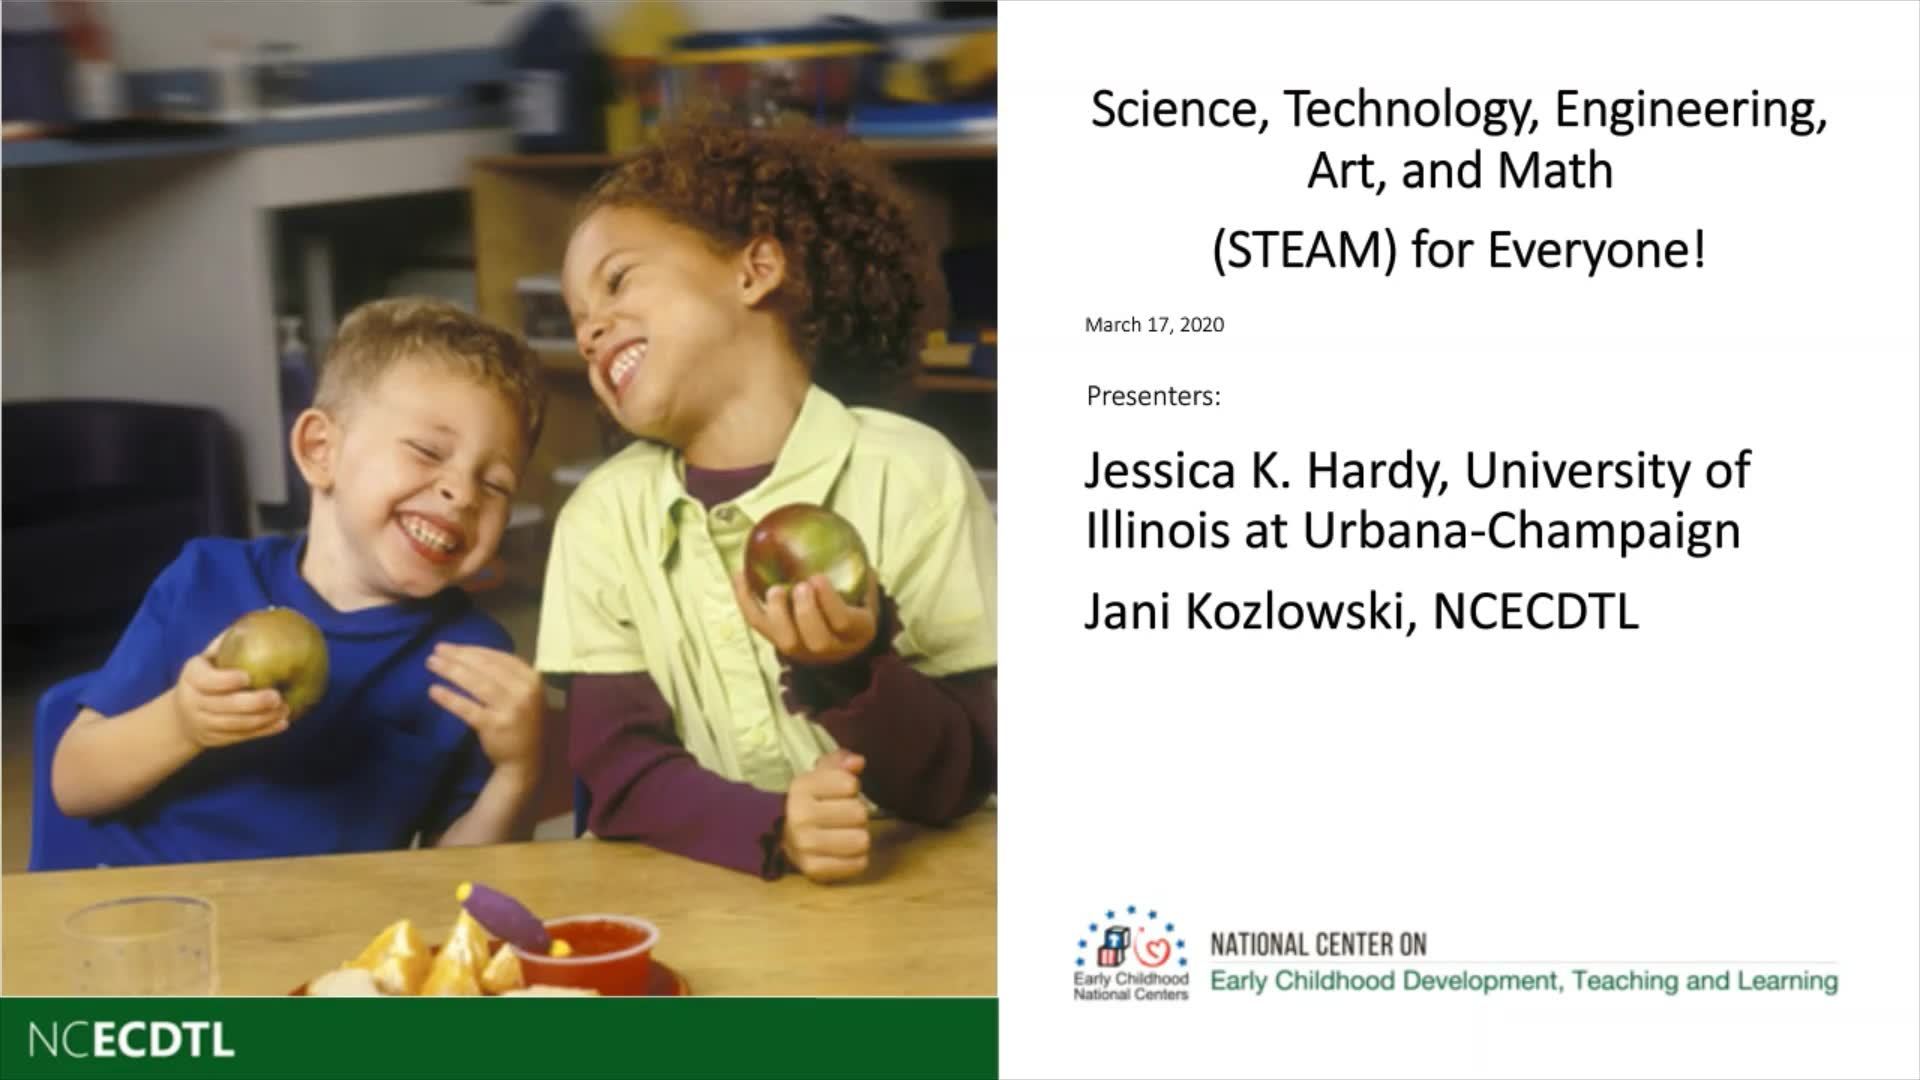 Science, Technology, Engineering, Art, and Math (STEAM) for Everyone